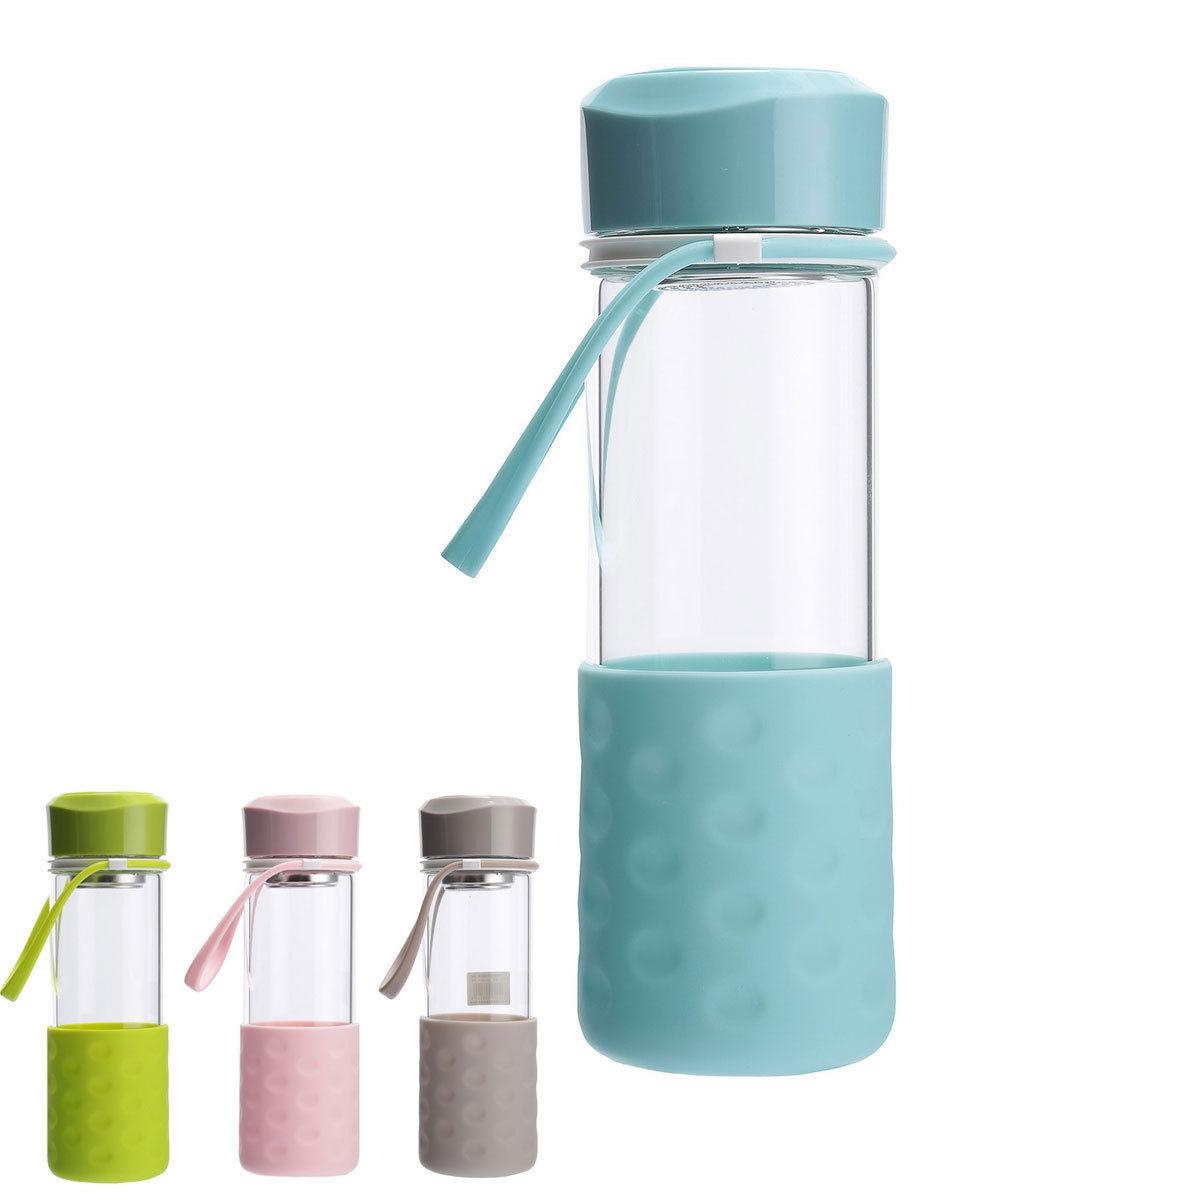 BPA-Free Glass Water Bottle 16oz with Strainer Anti-slip Sle